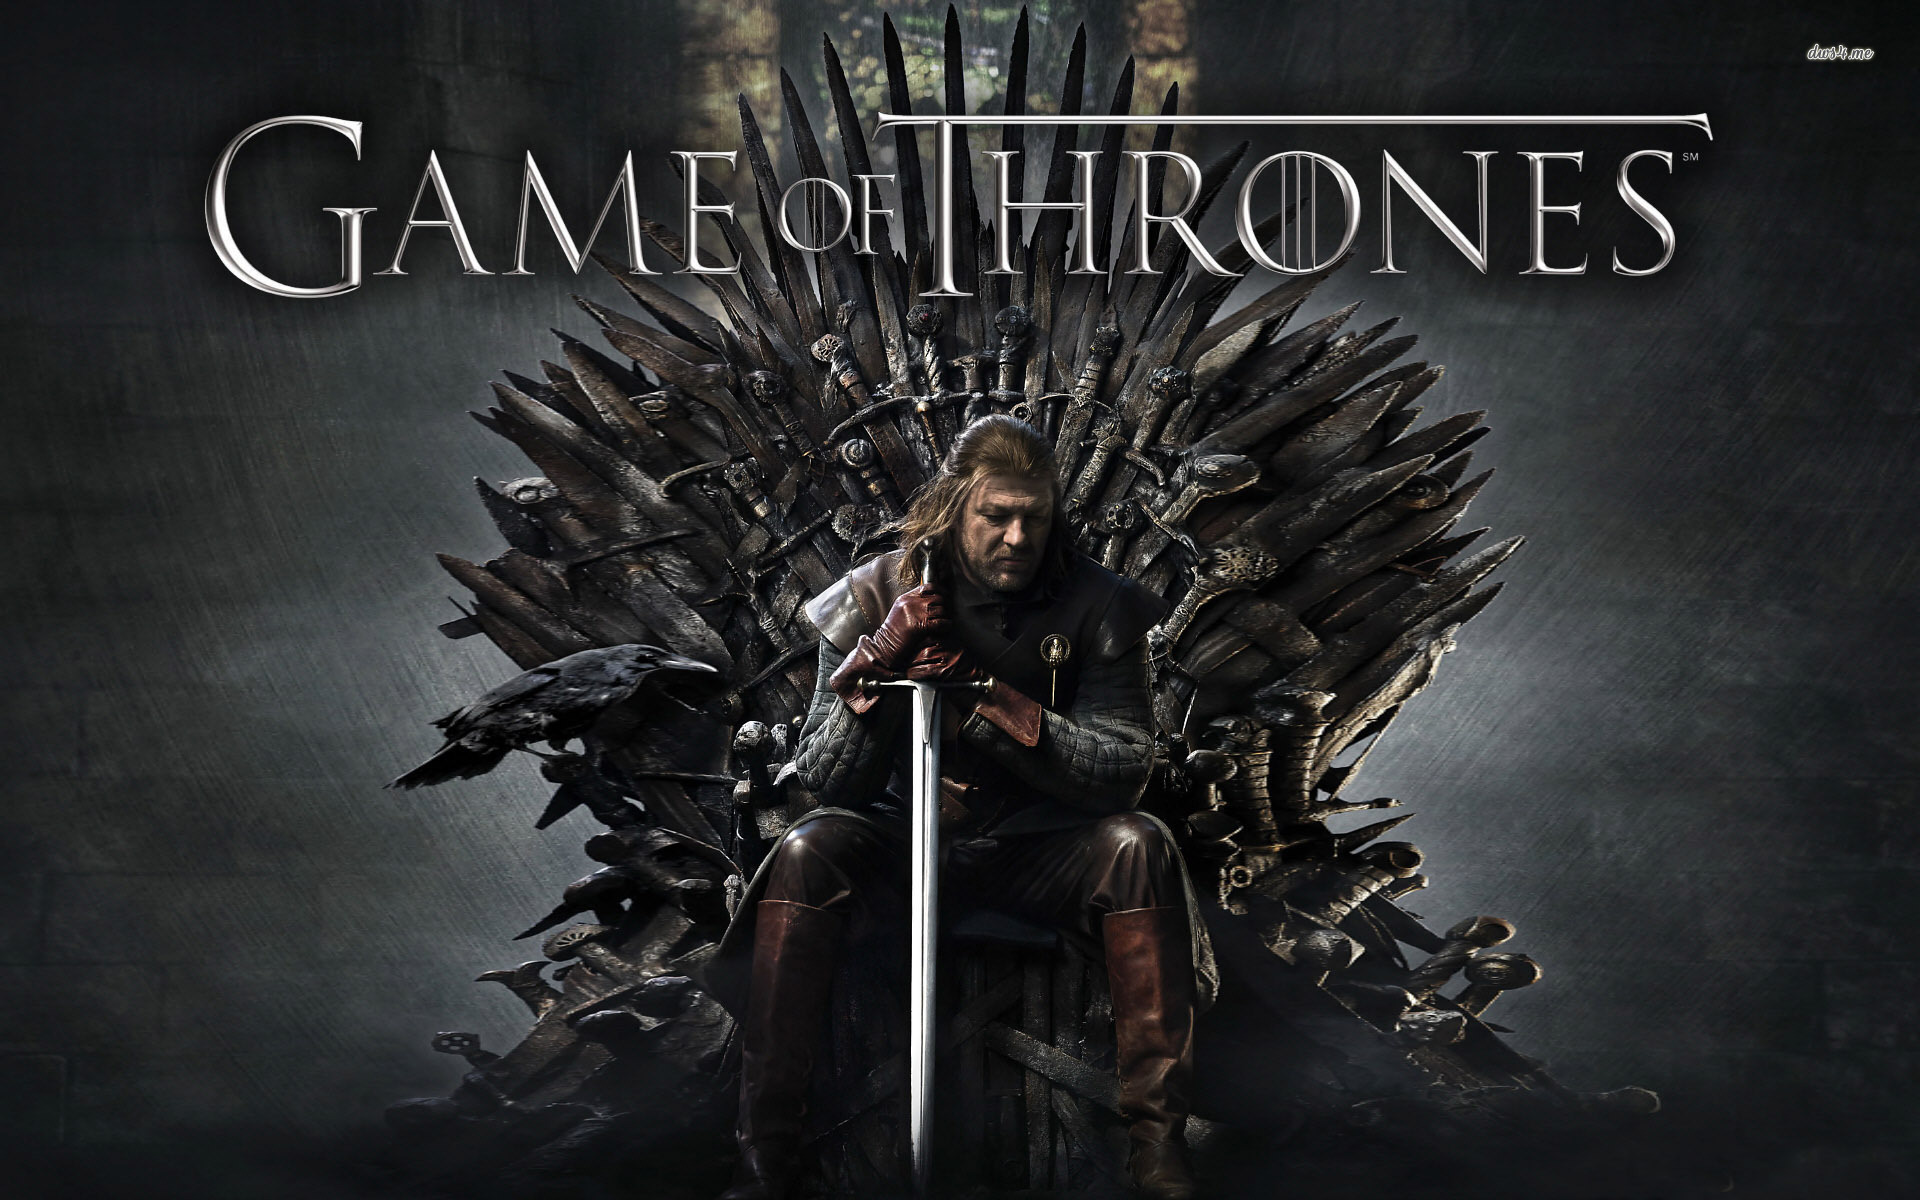 game of thrones season 1 hd free download